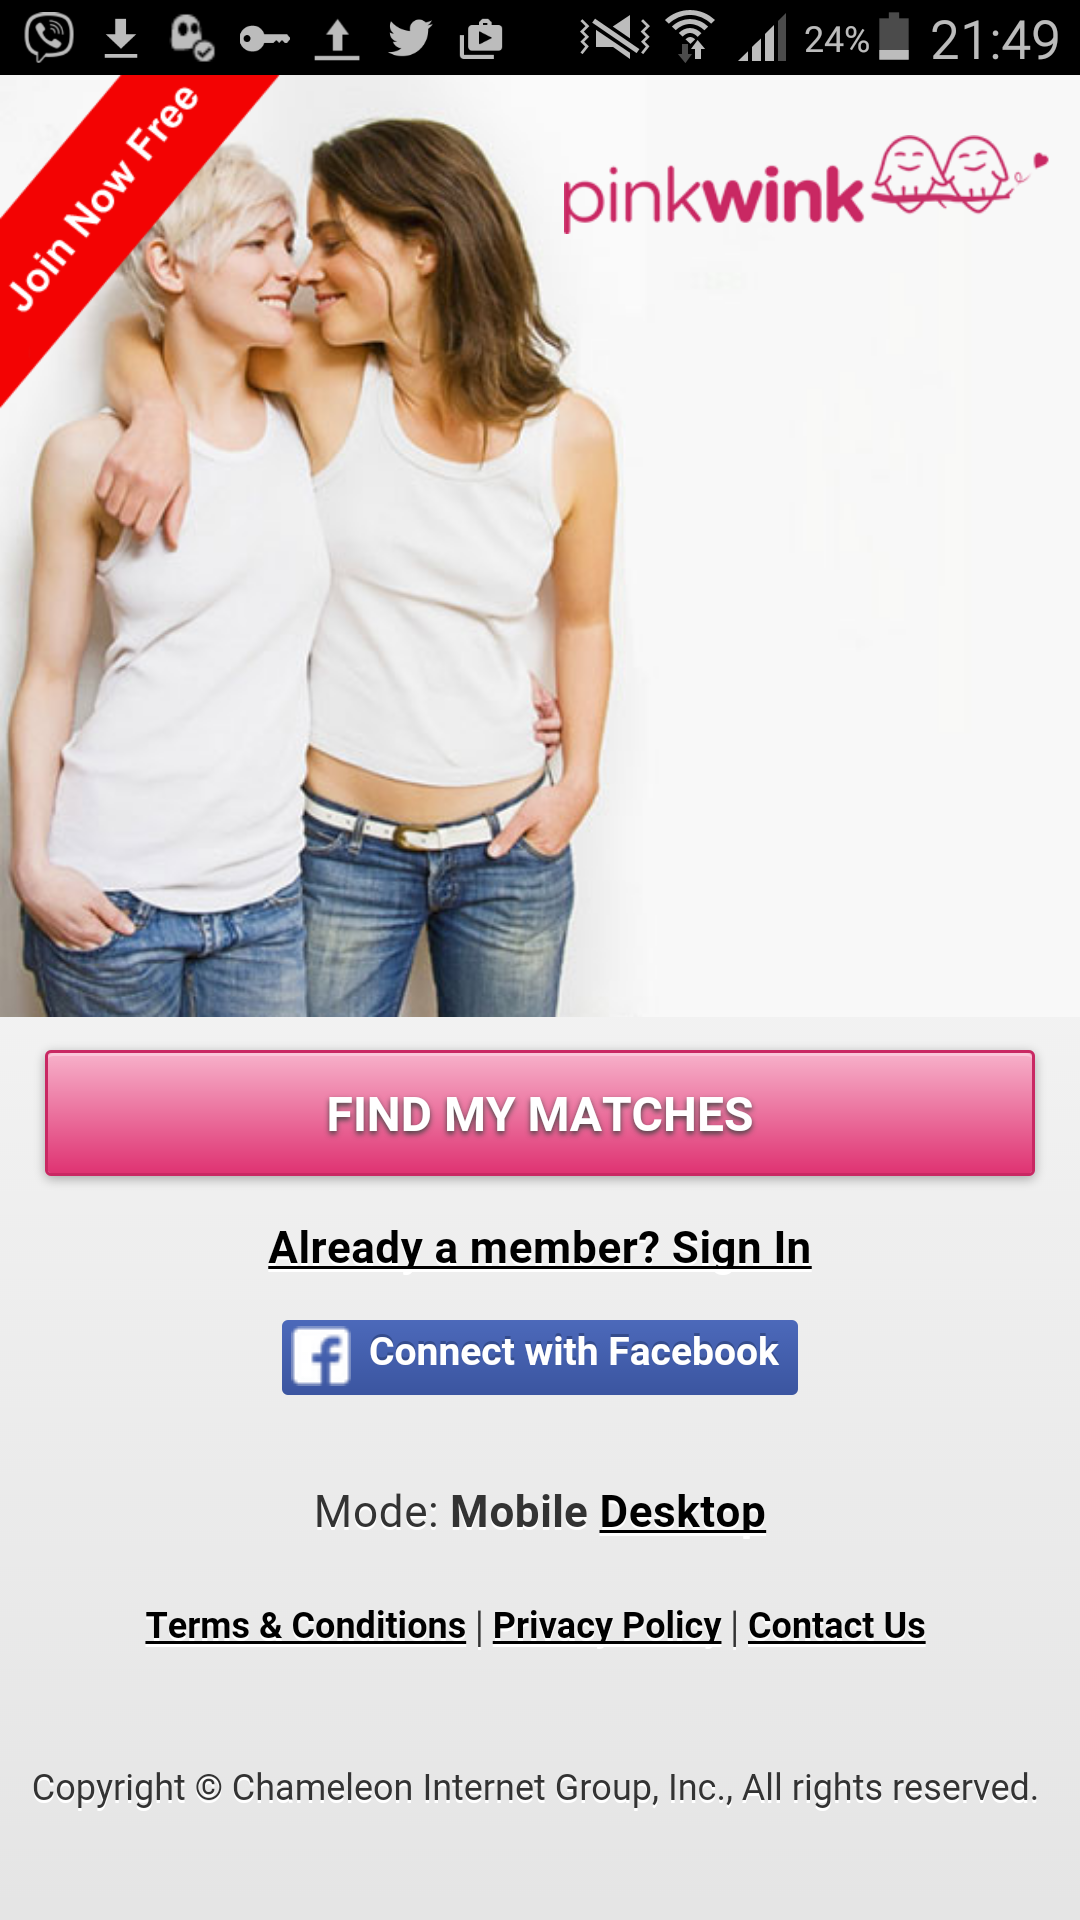 allegany lesbian dating site — geared towards bisexual or lesbian women  information about parties in other locations may  marktplaats, blogs en informatie is geen dating site of.